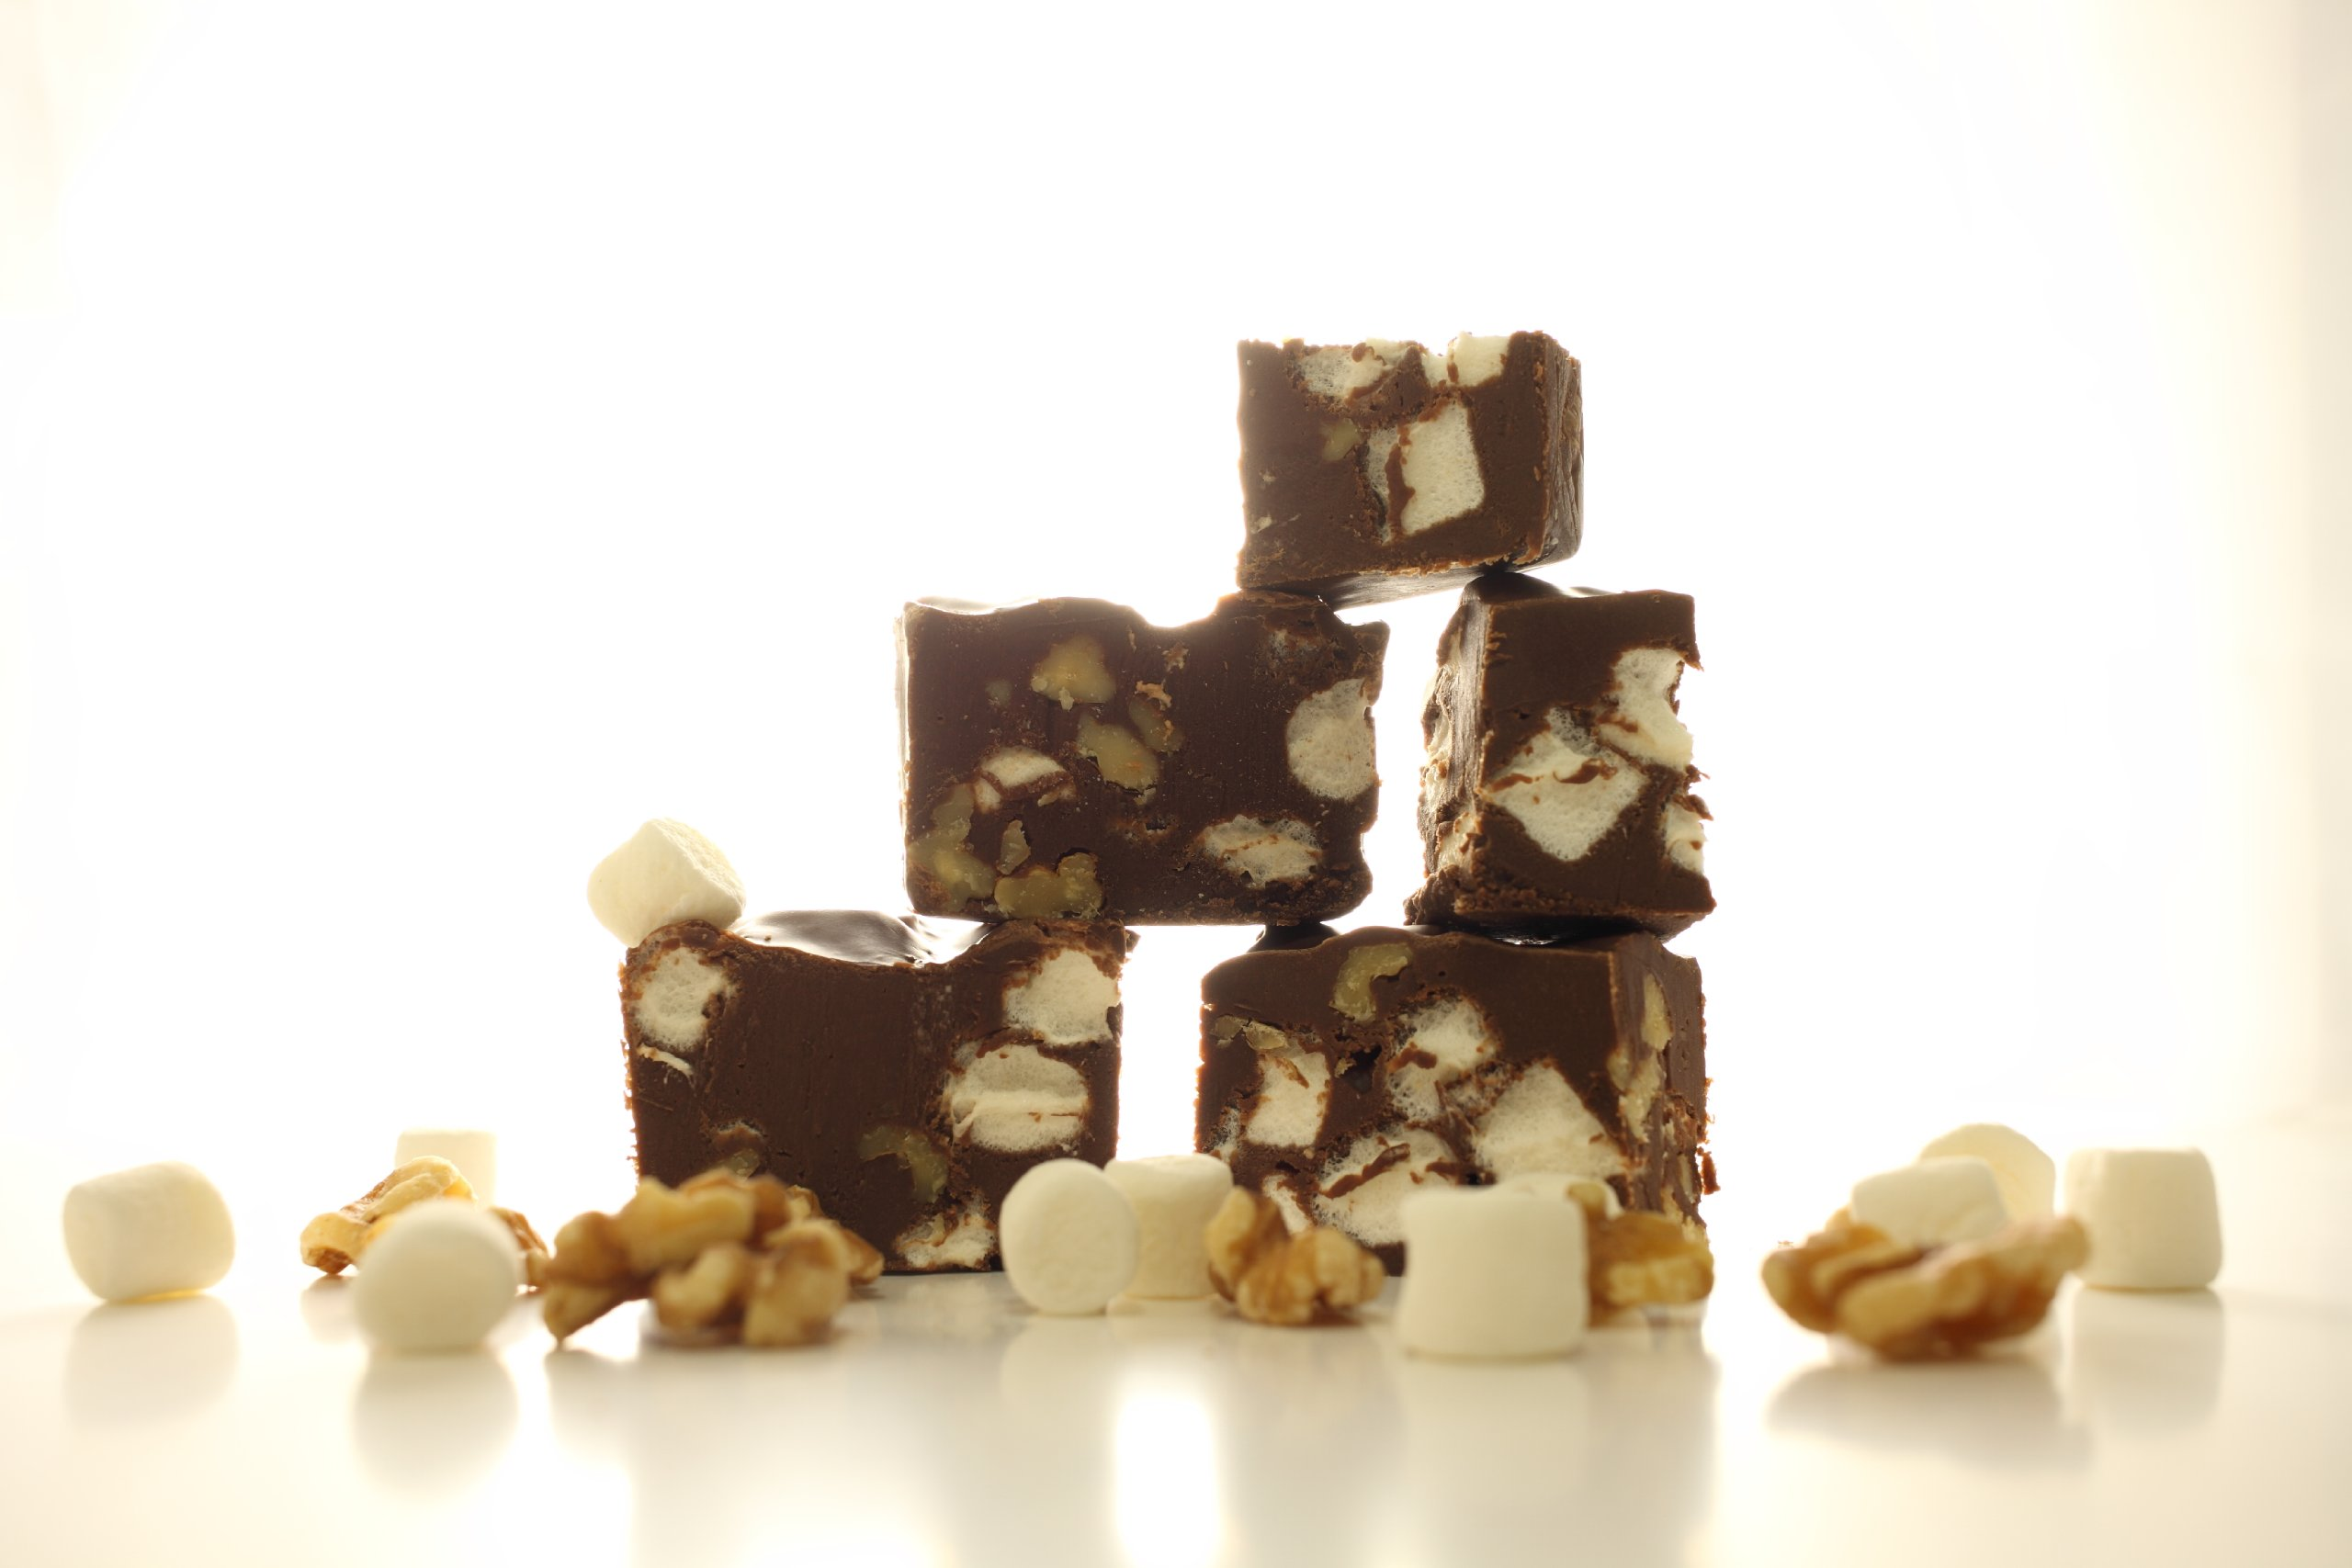 Oh Fudge - Chocolate Rocky Road Fudge 1 Pound - The Oh Fudge Co. secret rocky road fudge recipe - rich, pure, delicious creamy chocolate infused with loads of marshmallows and walnuts- compared to Mo's Fudge Factor